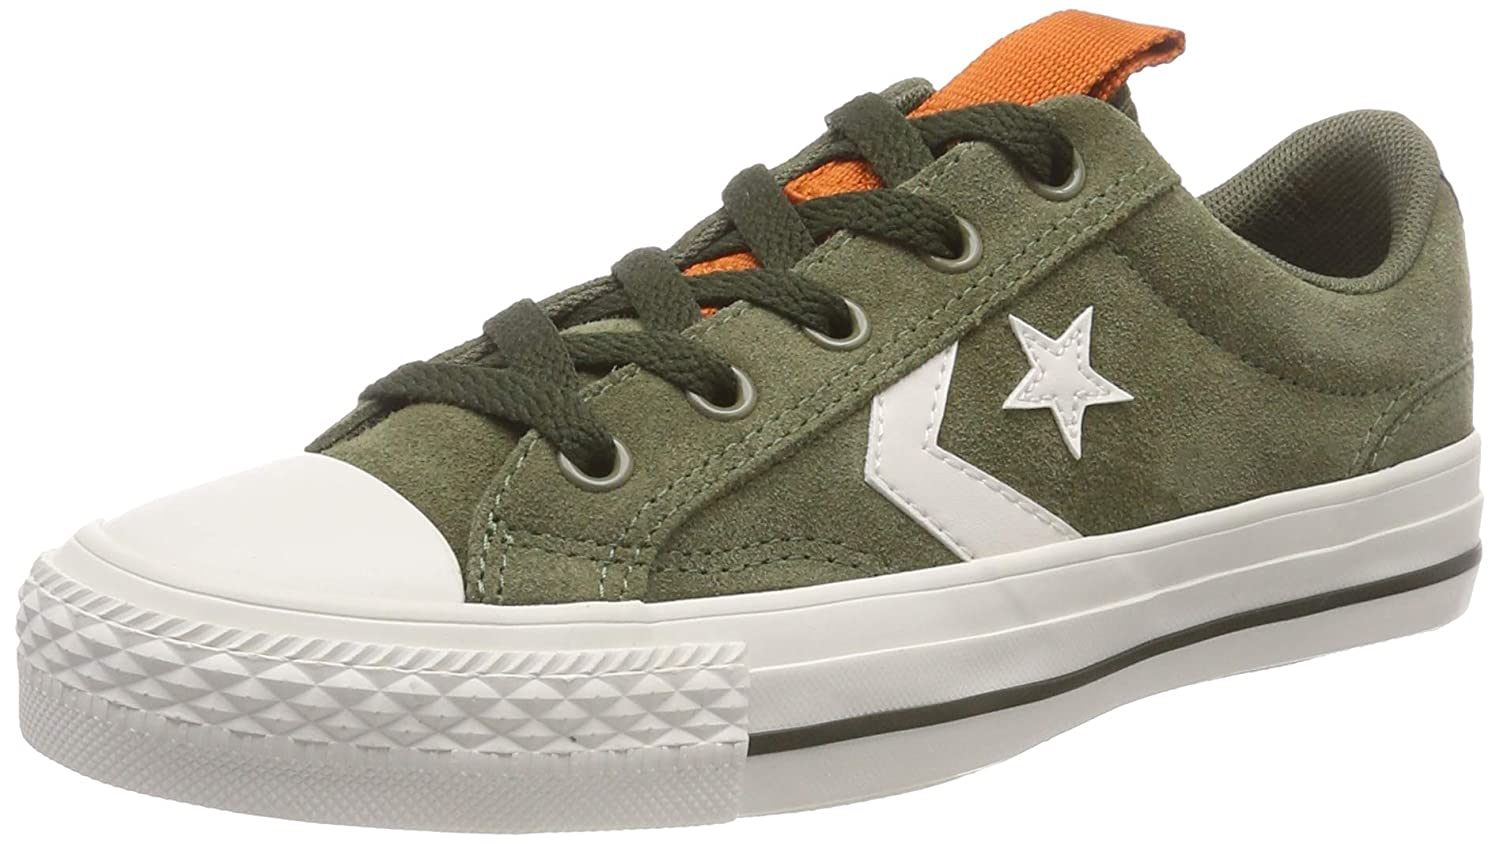 TALLA 50 EU. Converse Star Player, Zapatillas Unisex Adulto